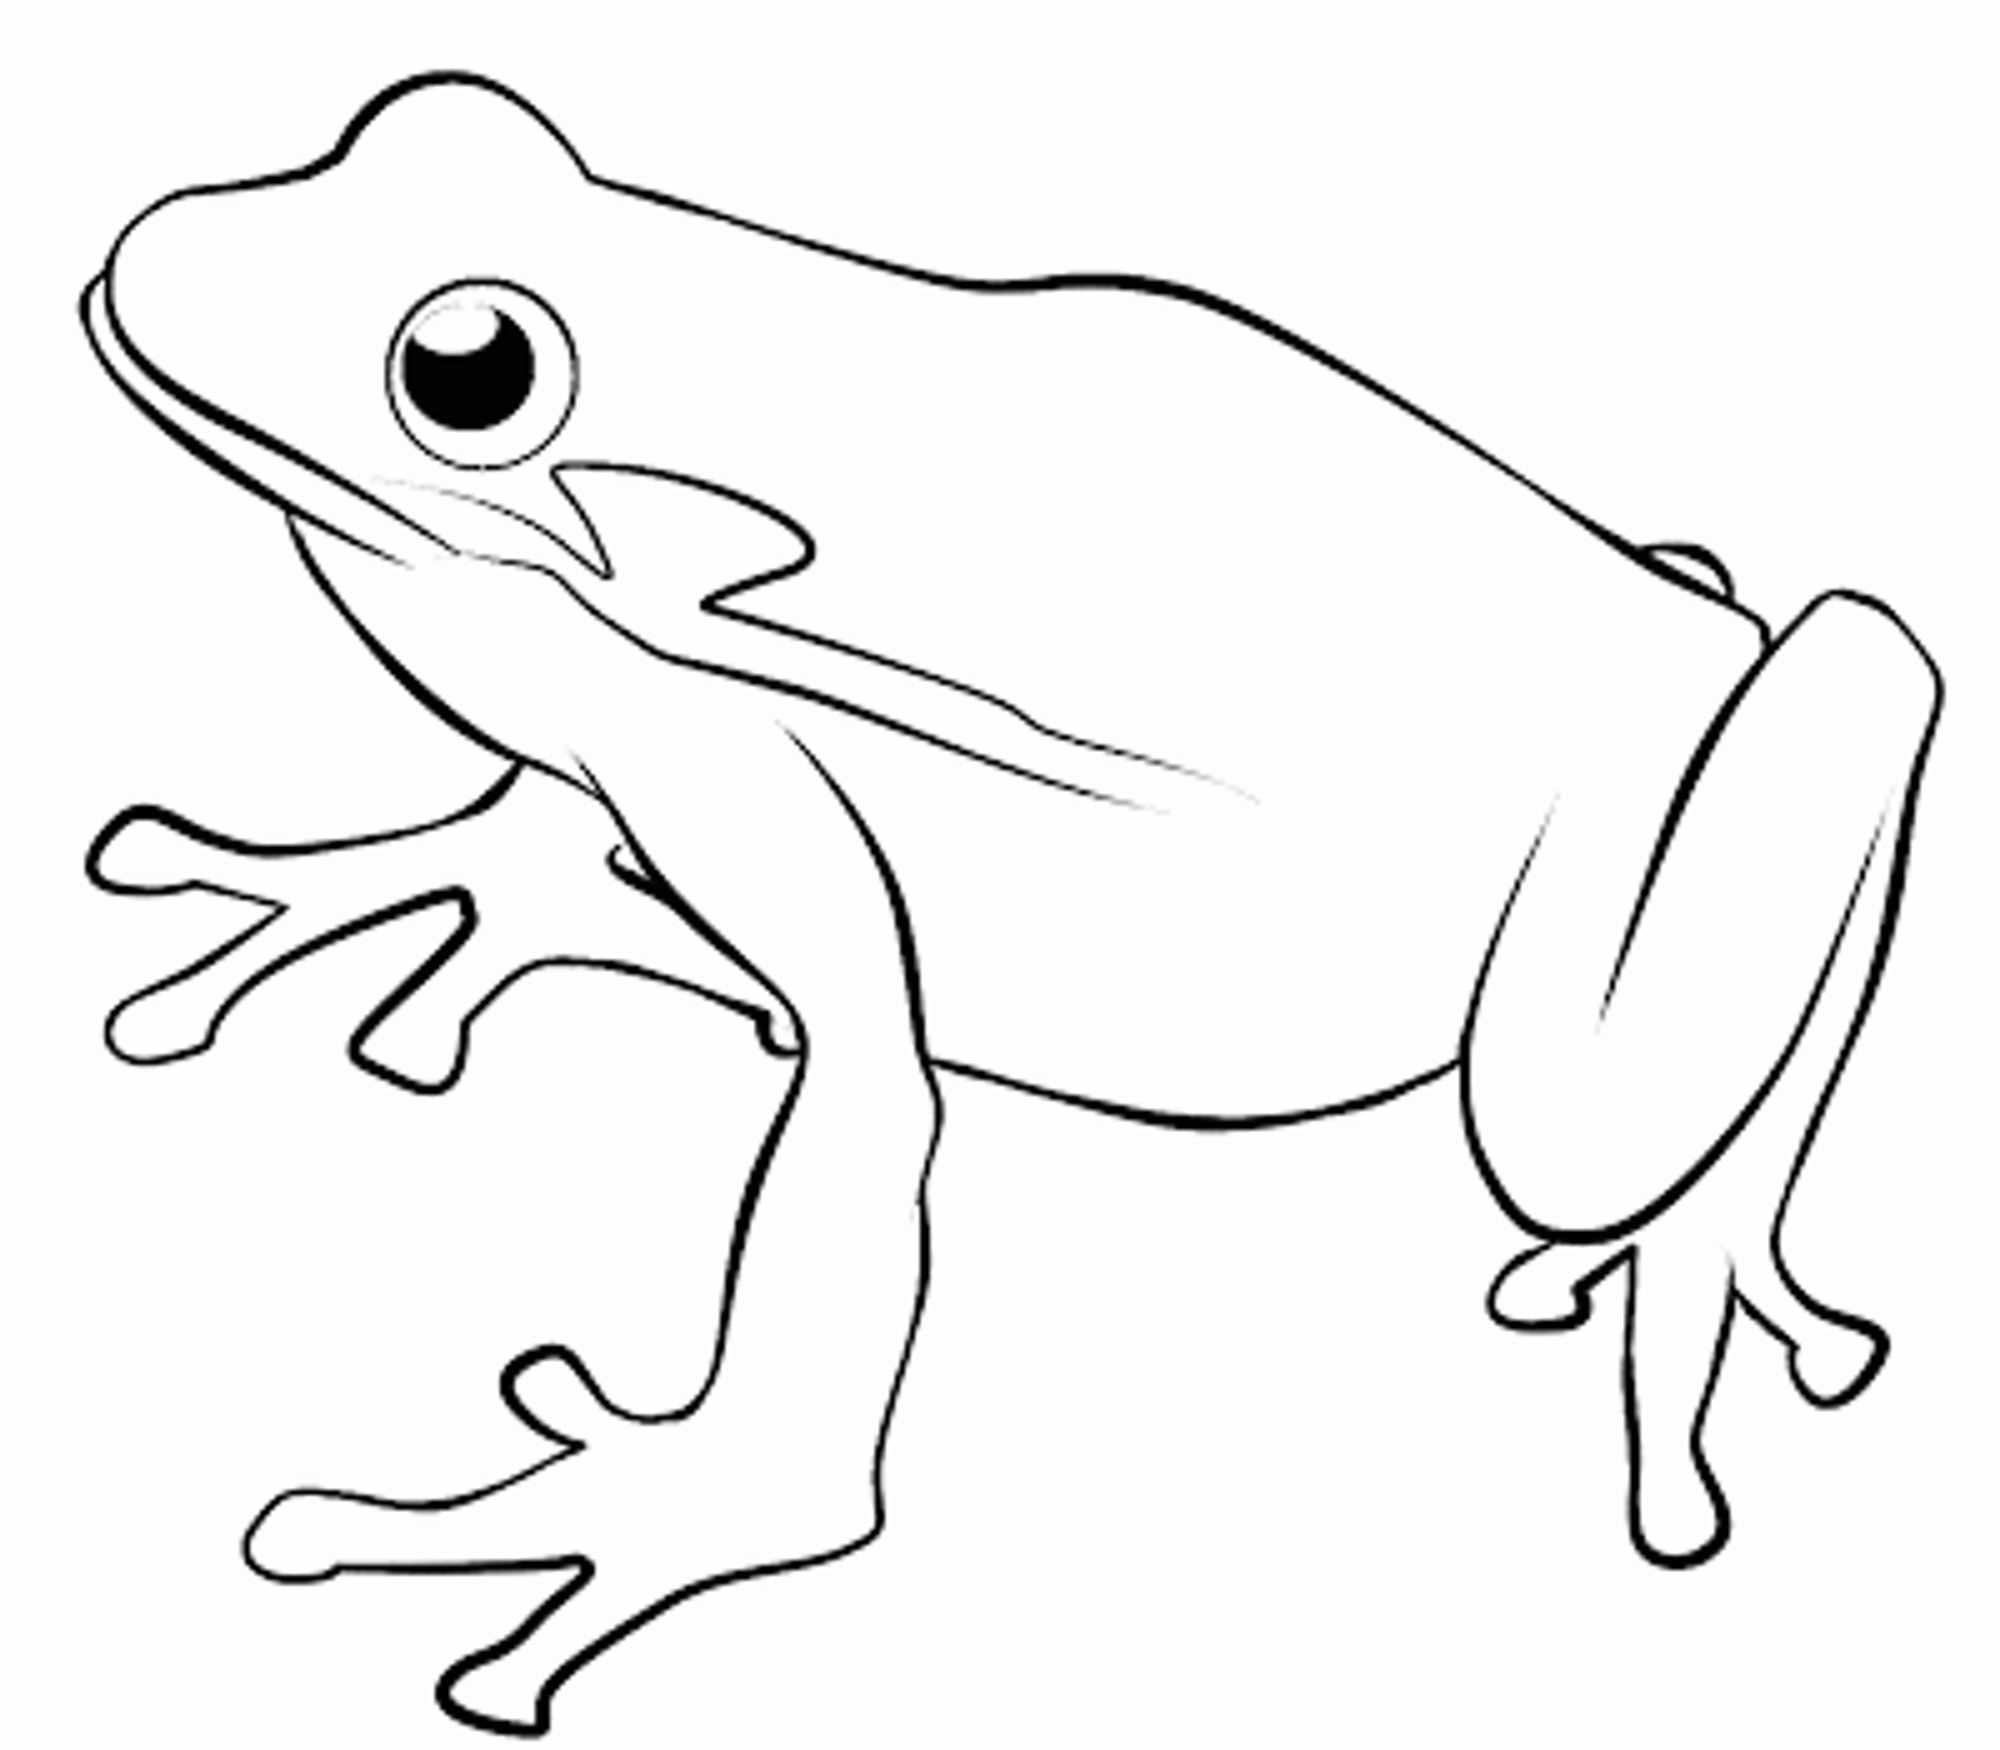 coloring images of frog frog coloring pages of images frog coloring